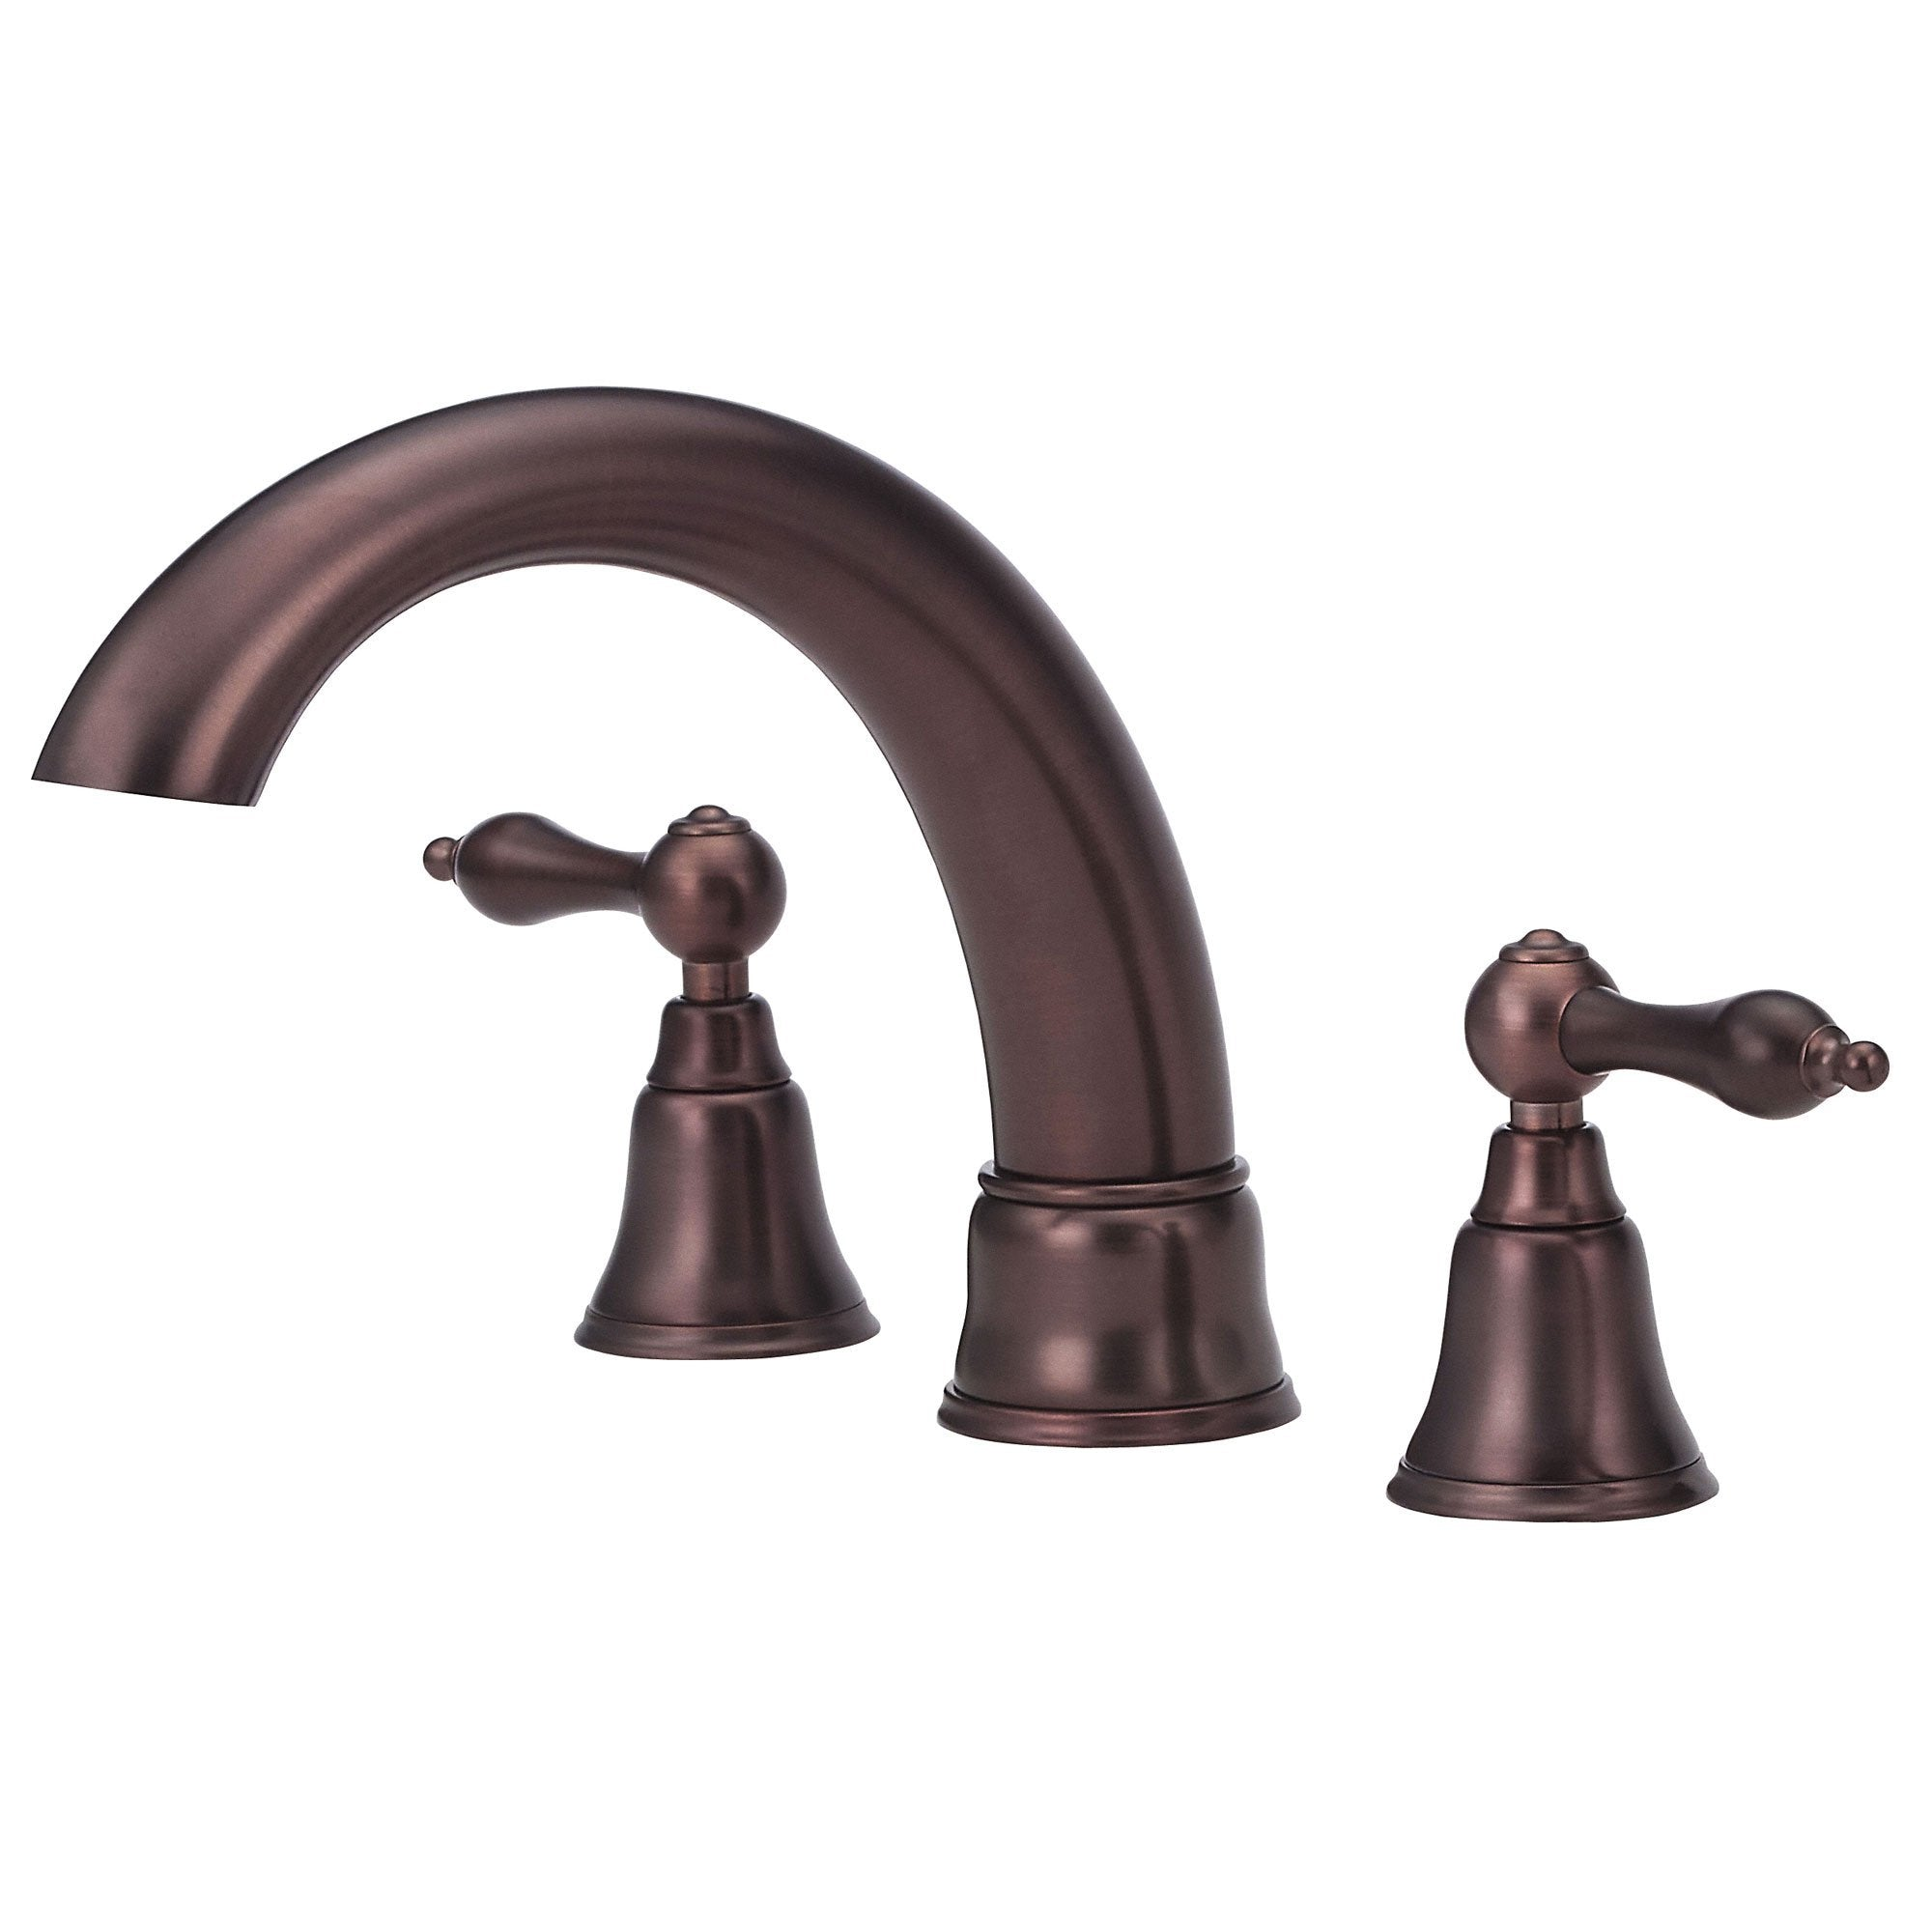 Danze Fairmont Oil Rubbed Bronze Widespread Roman Tub Filler Faucet INCLUDES Rough-in Valve